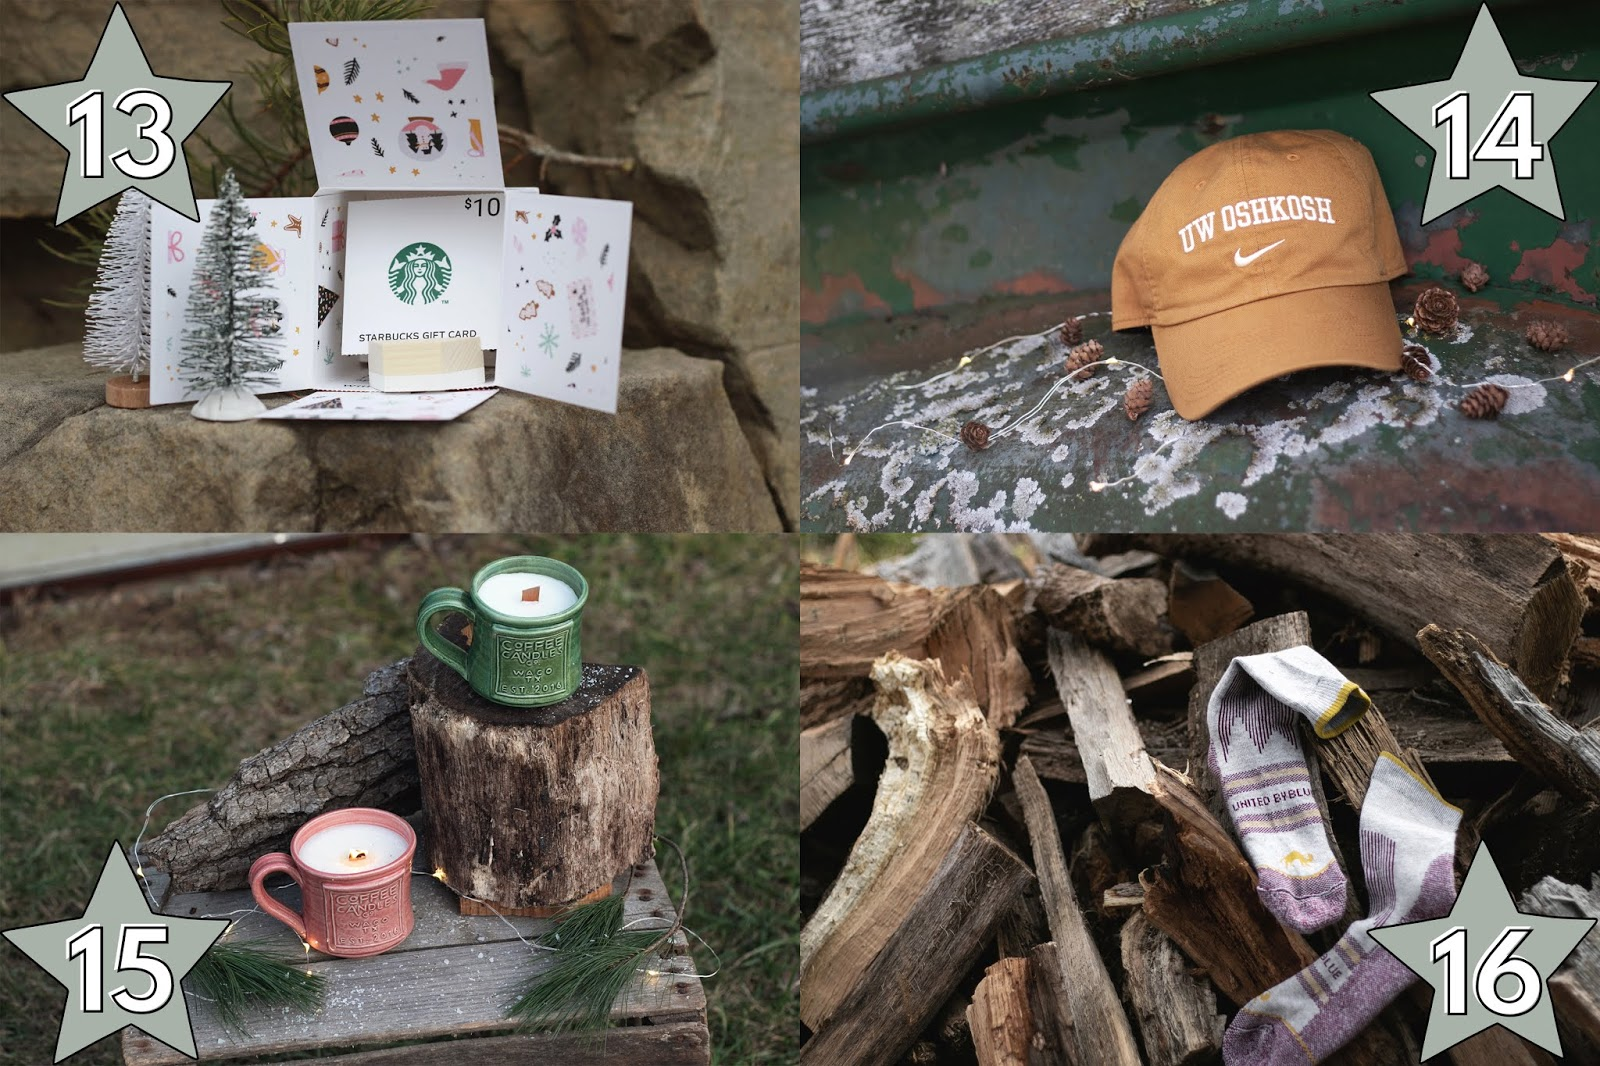 unique gift ideas for him, greetabl gift box holiday gift idea for him, baseball hat affordable gift ideas for him, coffee candle co candles gift idea for him, United by Blue buffalo socks gift idea for him, gifts for him under $25, holiday gift ideas for him